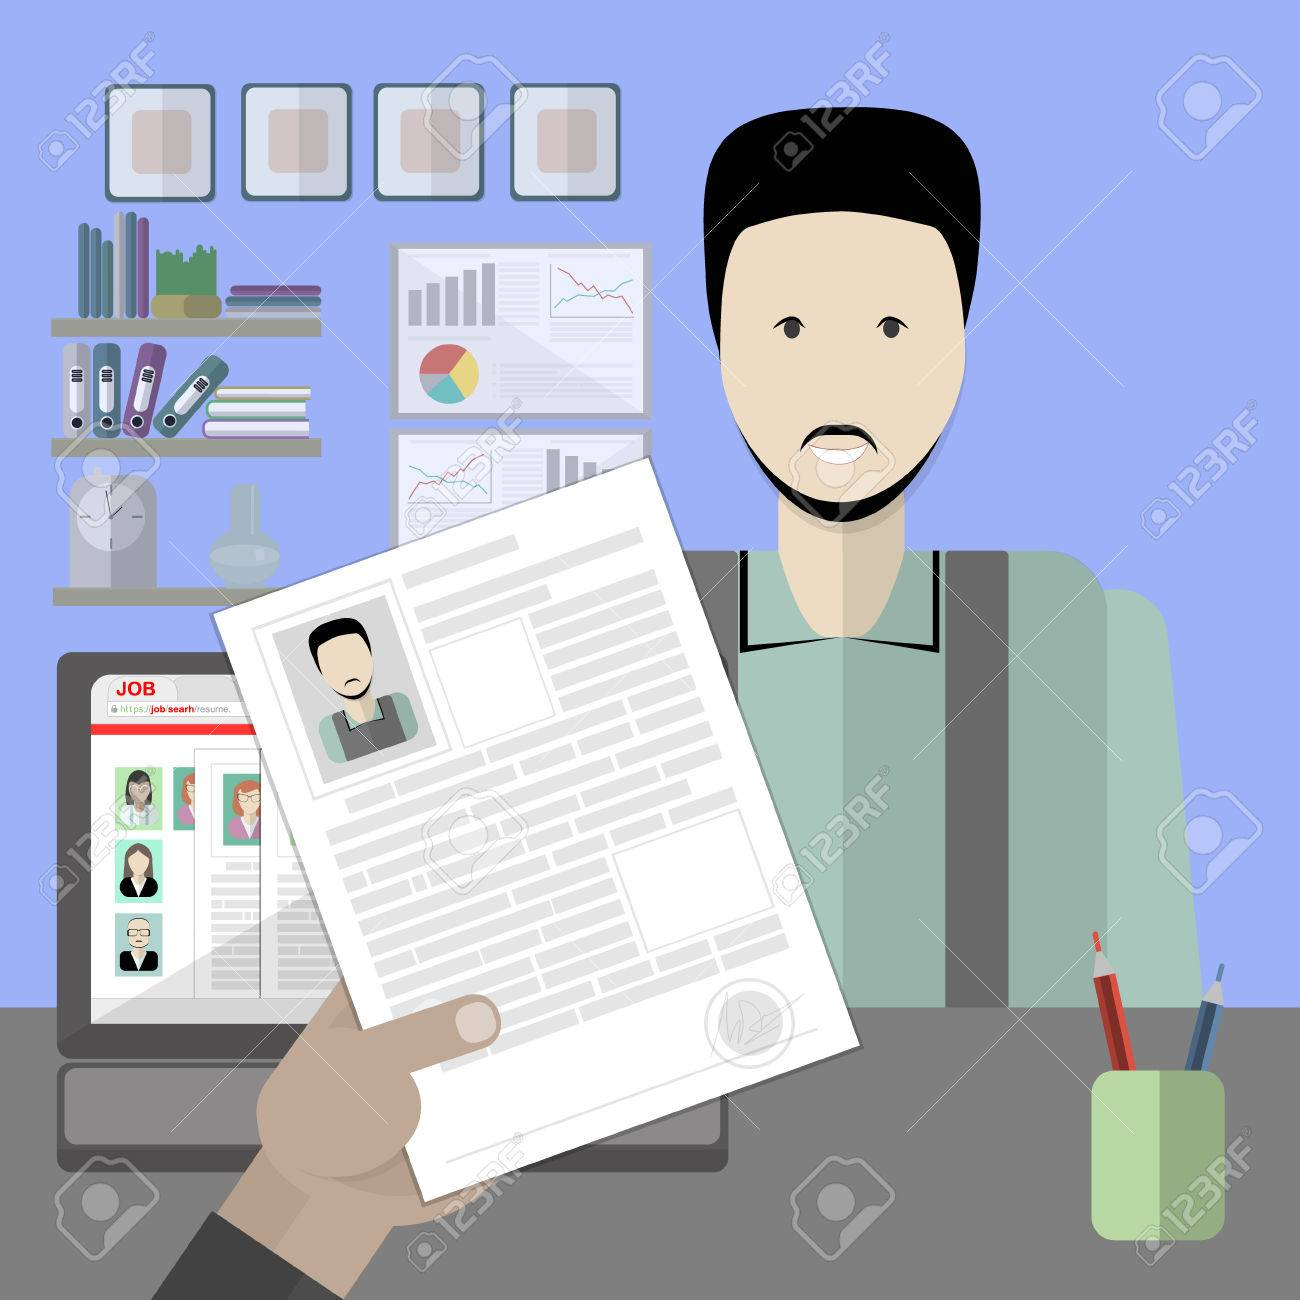 job interview with male resume recruitment and hiring candidate professional choice hire employee